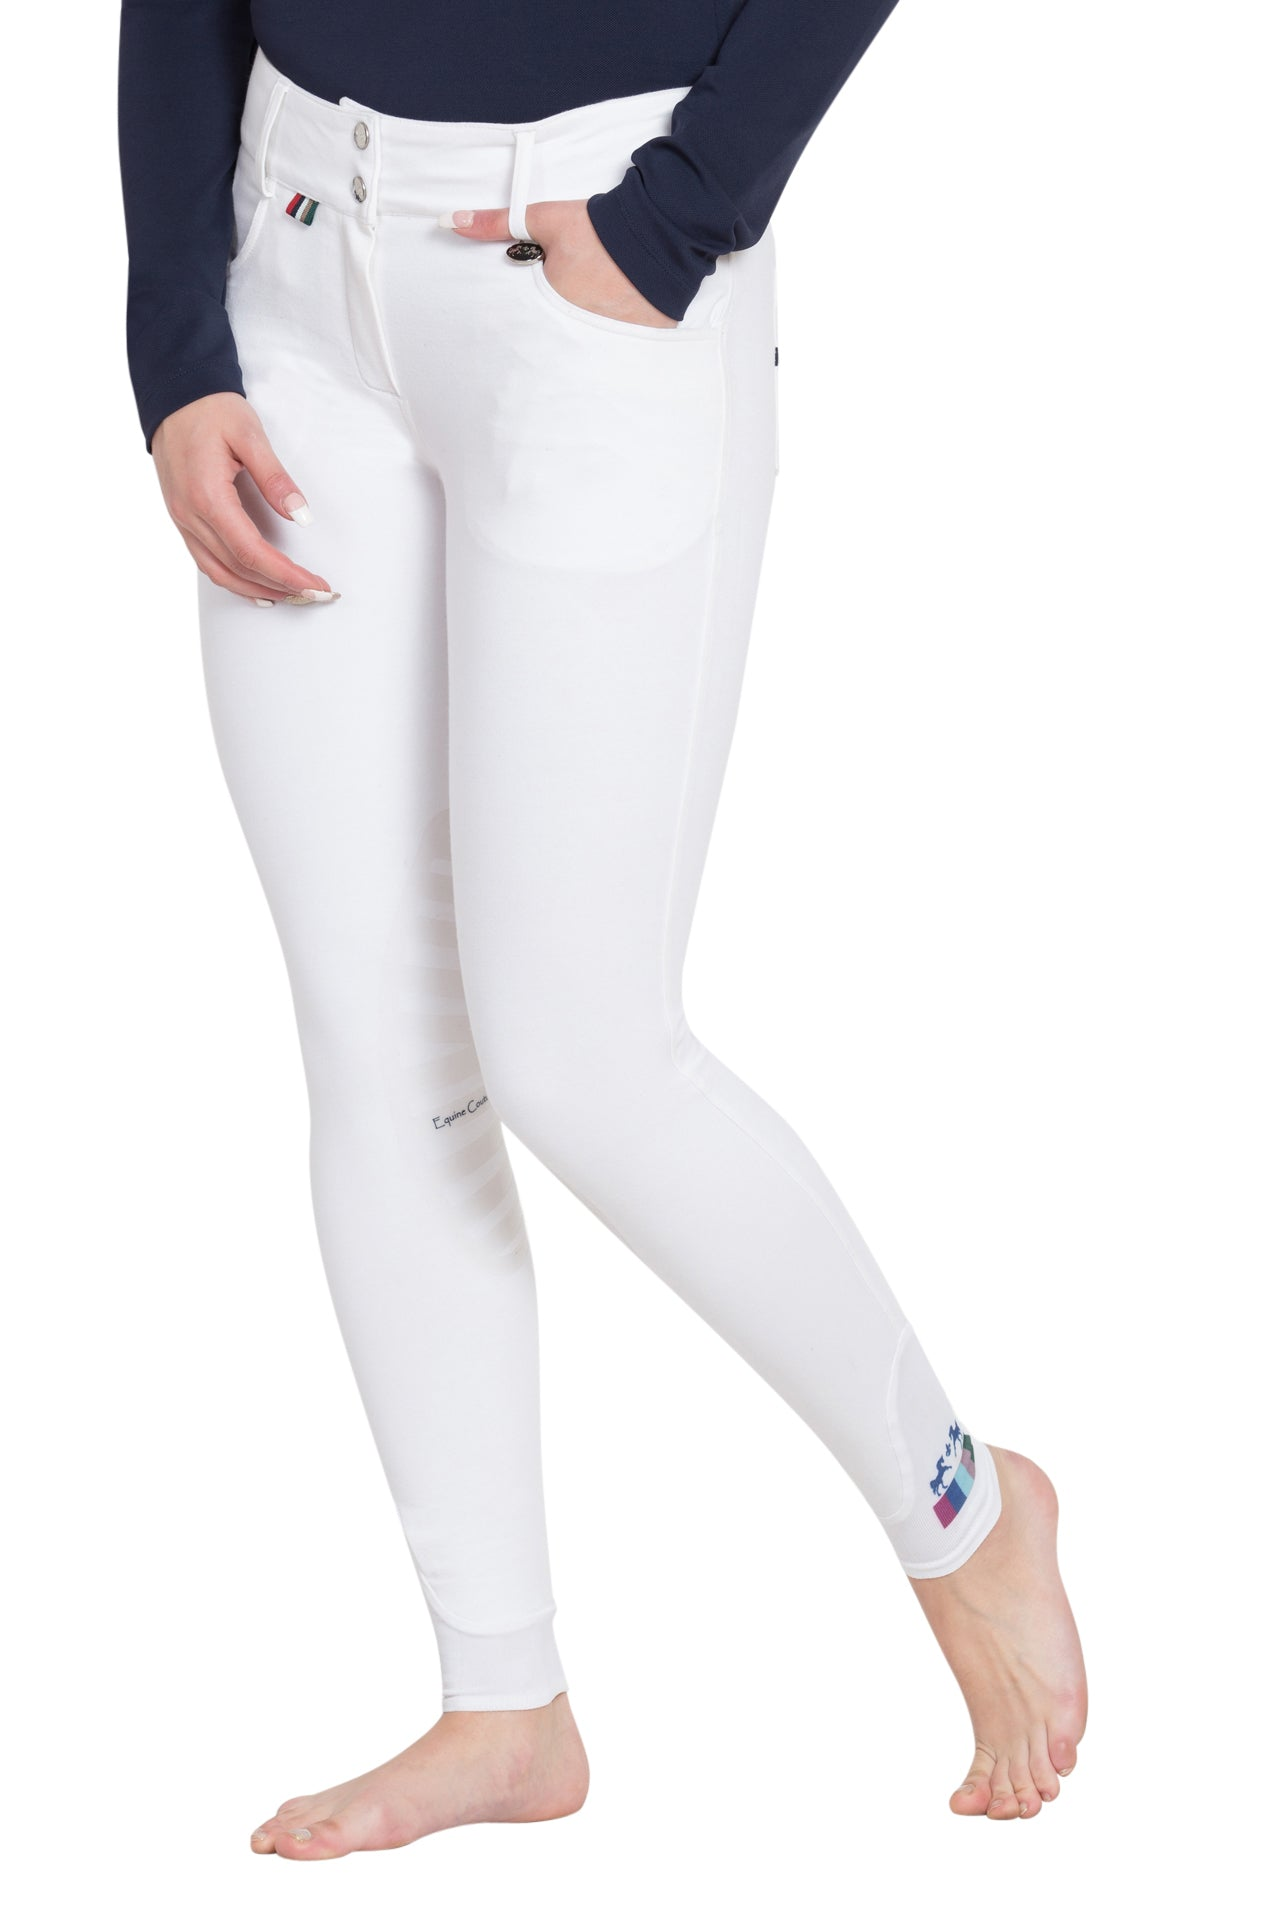 Equine Couture Ladies Sophie Silicone Knee Patch Breeches_192